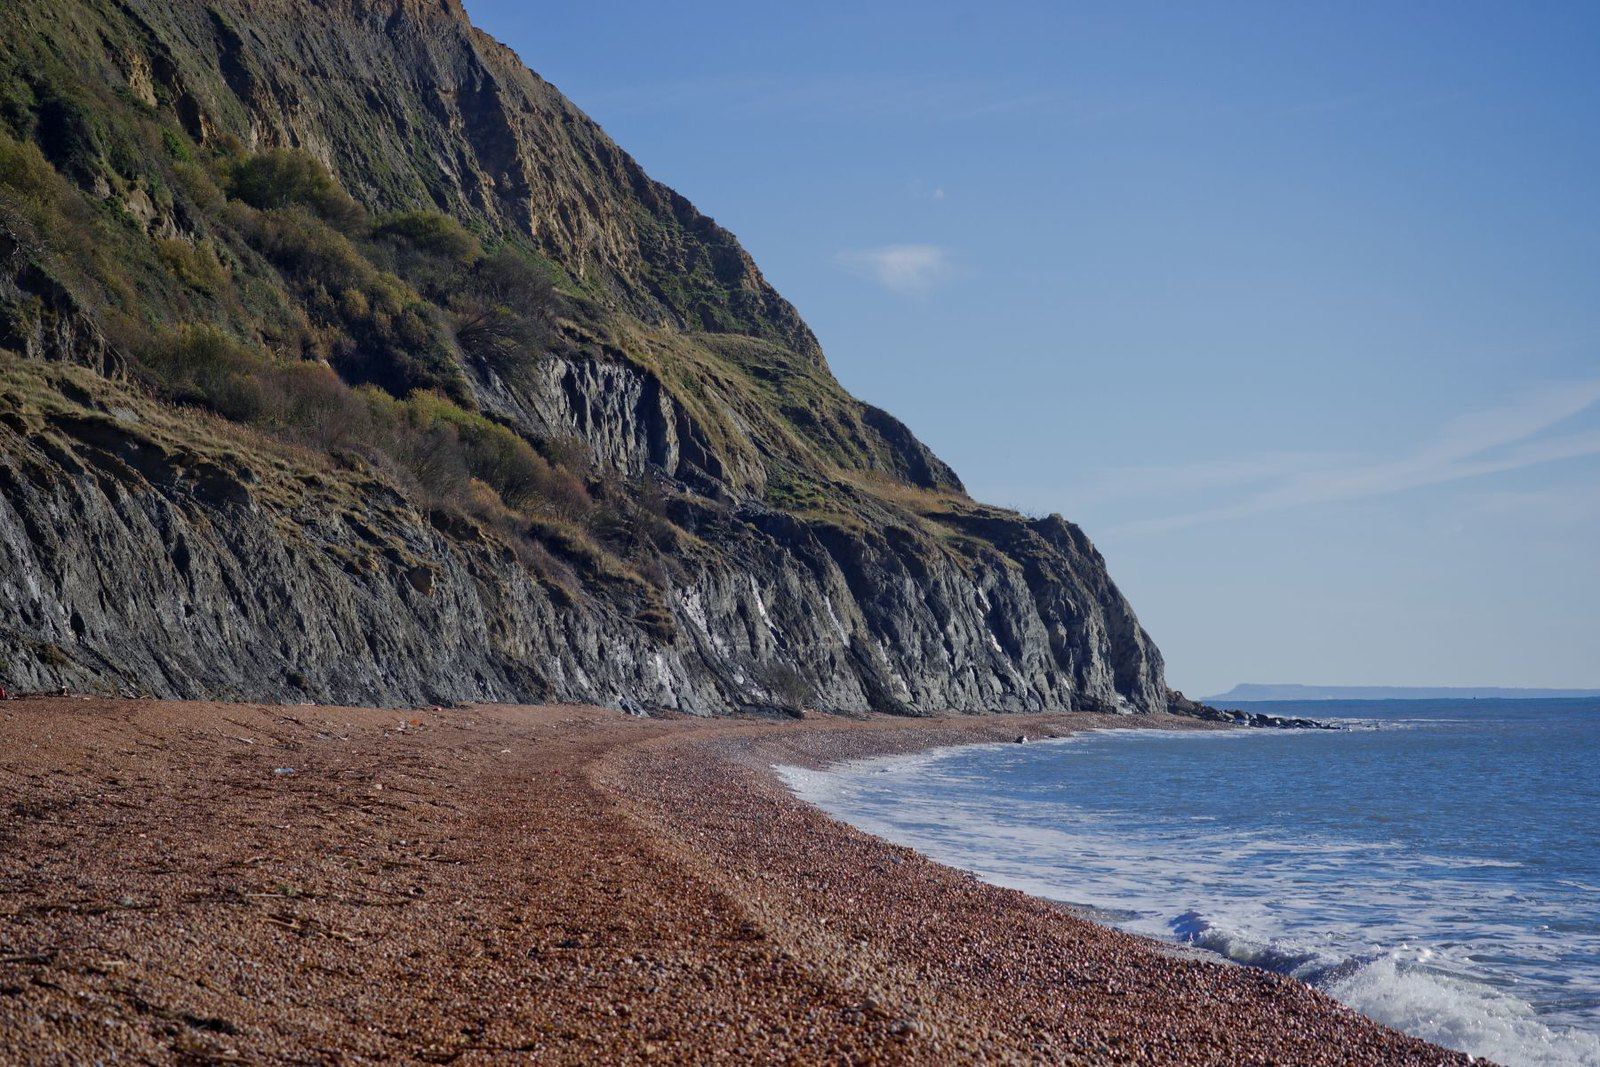 Cliff face looms over the beach at Seatown